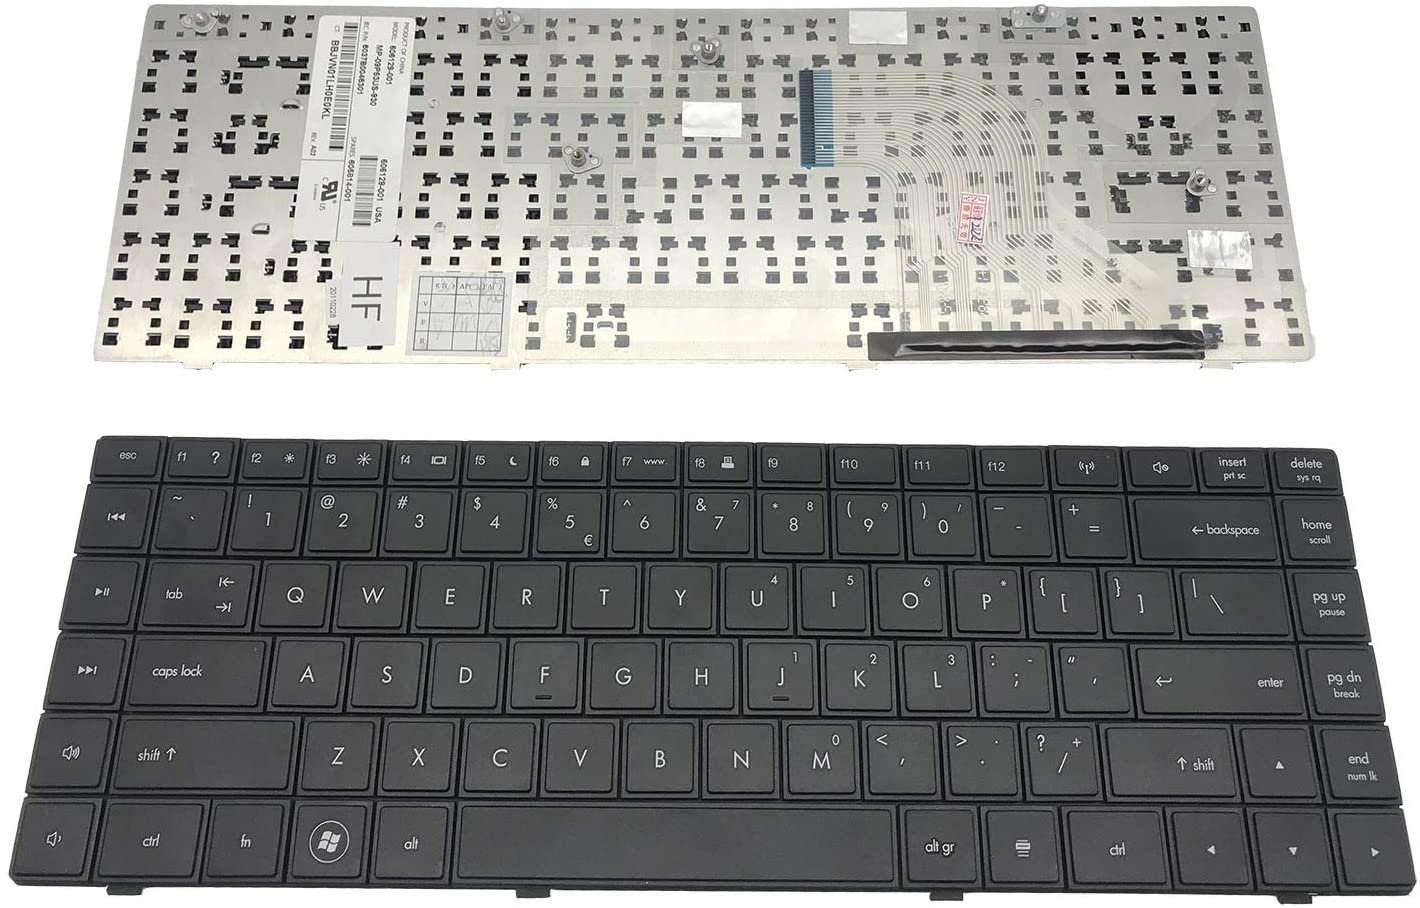 Keyboard go go go US Layout Notebook Keyboard for HP Compaq 620 621 625 CQ620 CQ621 CQ625 Series Black, AEAX6U00110 599602-001 606129-001 V115326AS1 605814-001 (Notes: Not fit for CQ320 Laptop!!) CQ6